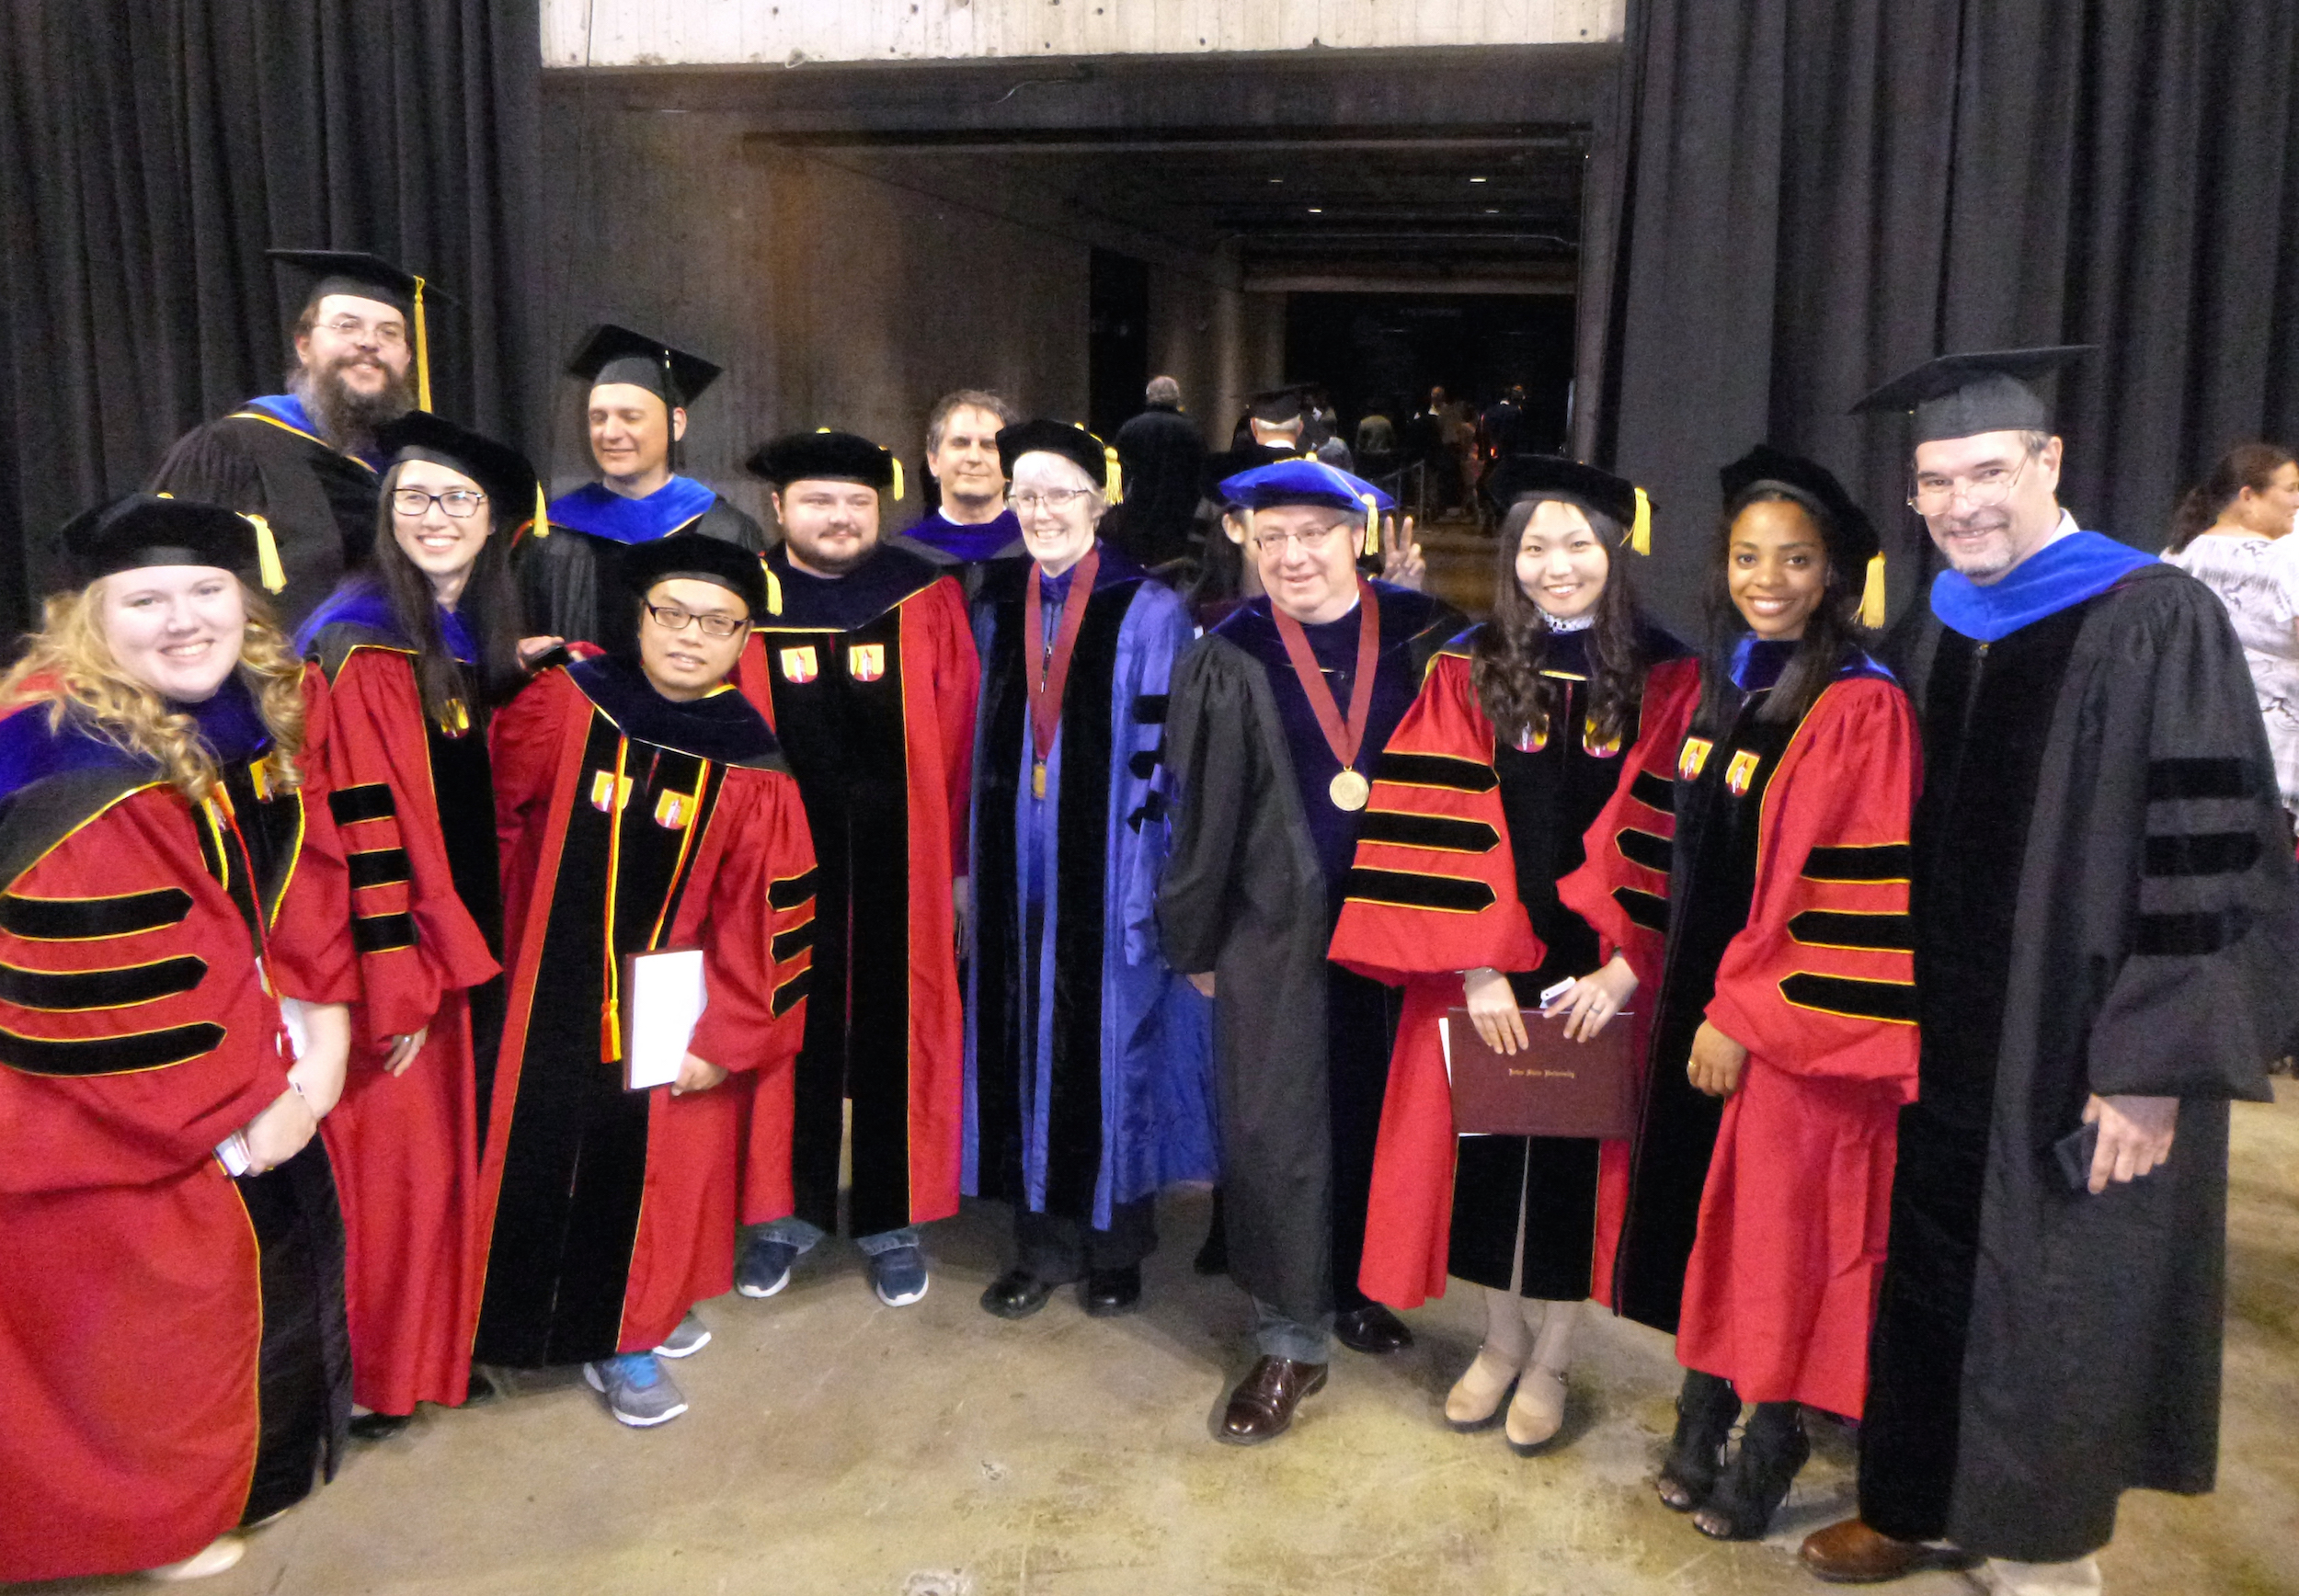 Graduate students and faculty pose in Hilton Coliseum at graduation.